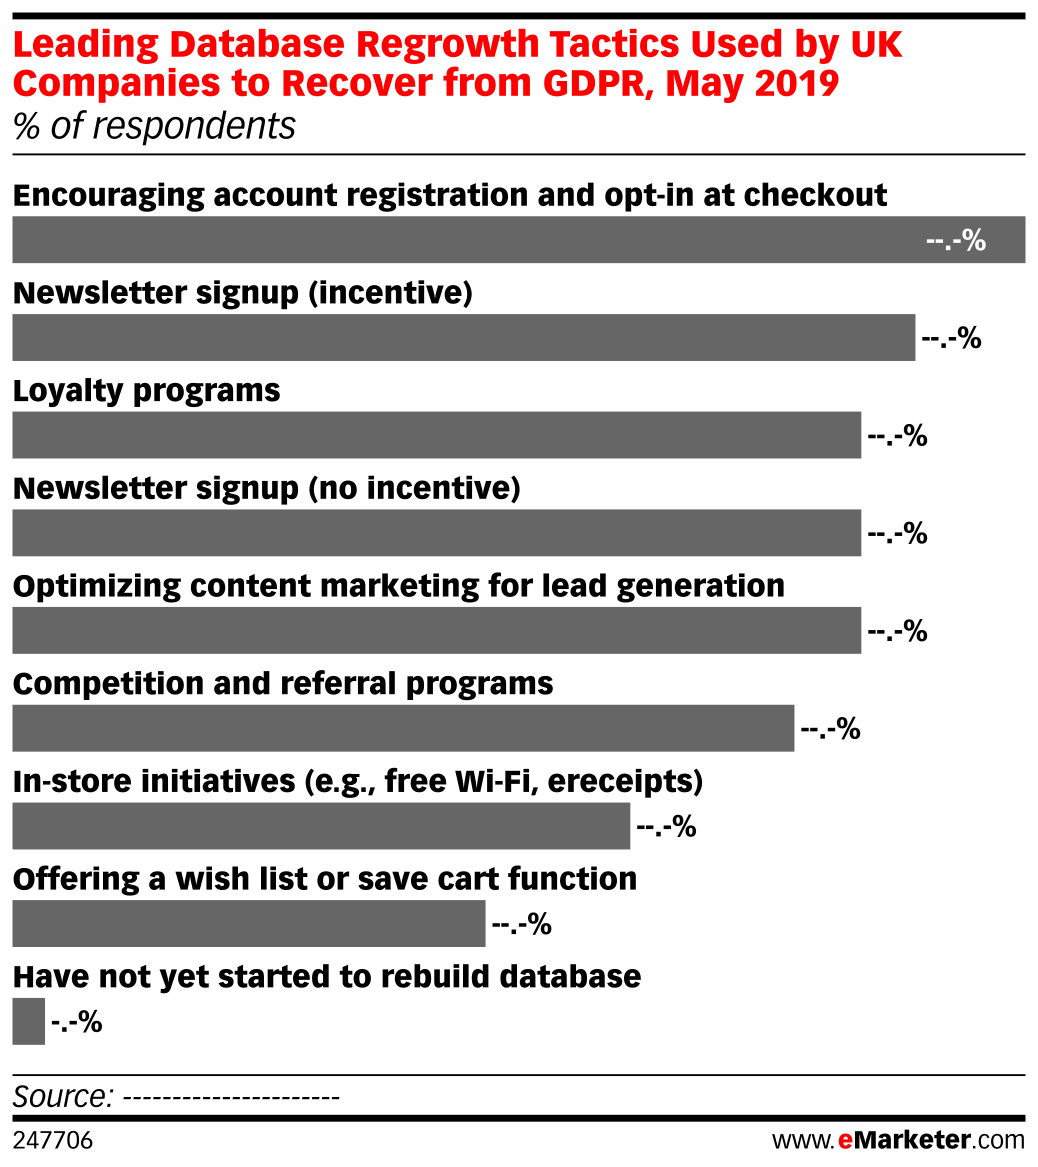 Leading Database Regrowth Tactics Used by UK Companies to Recover from GDPR, May 2019 (% of respondents)